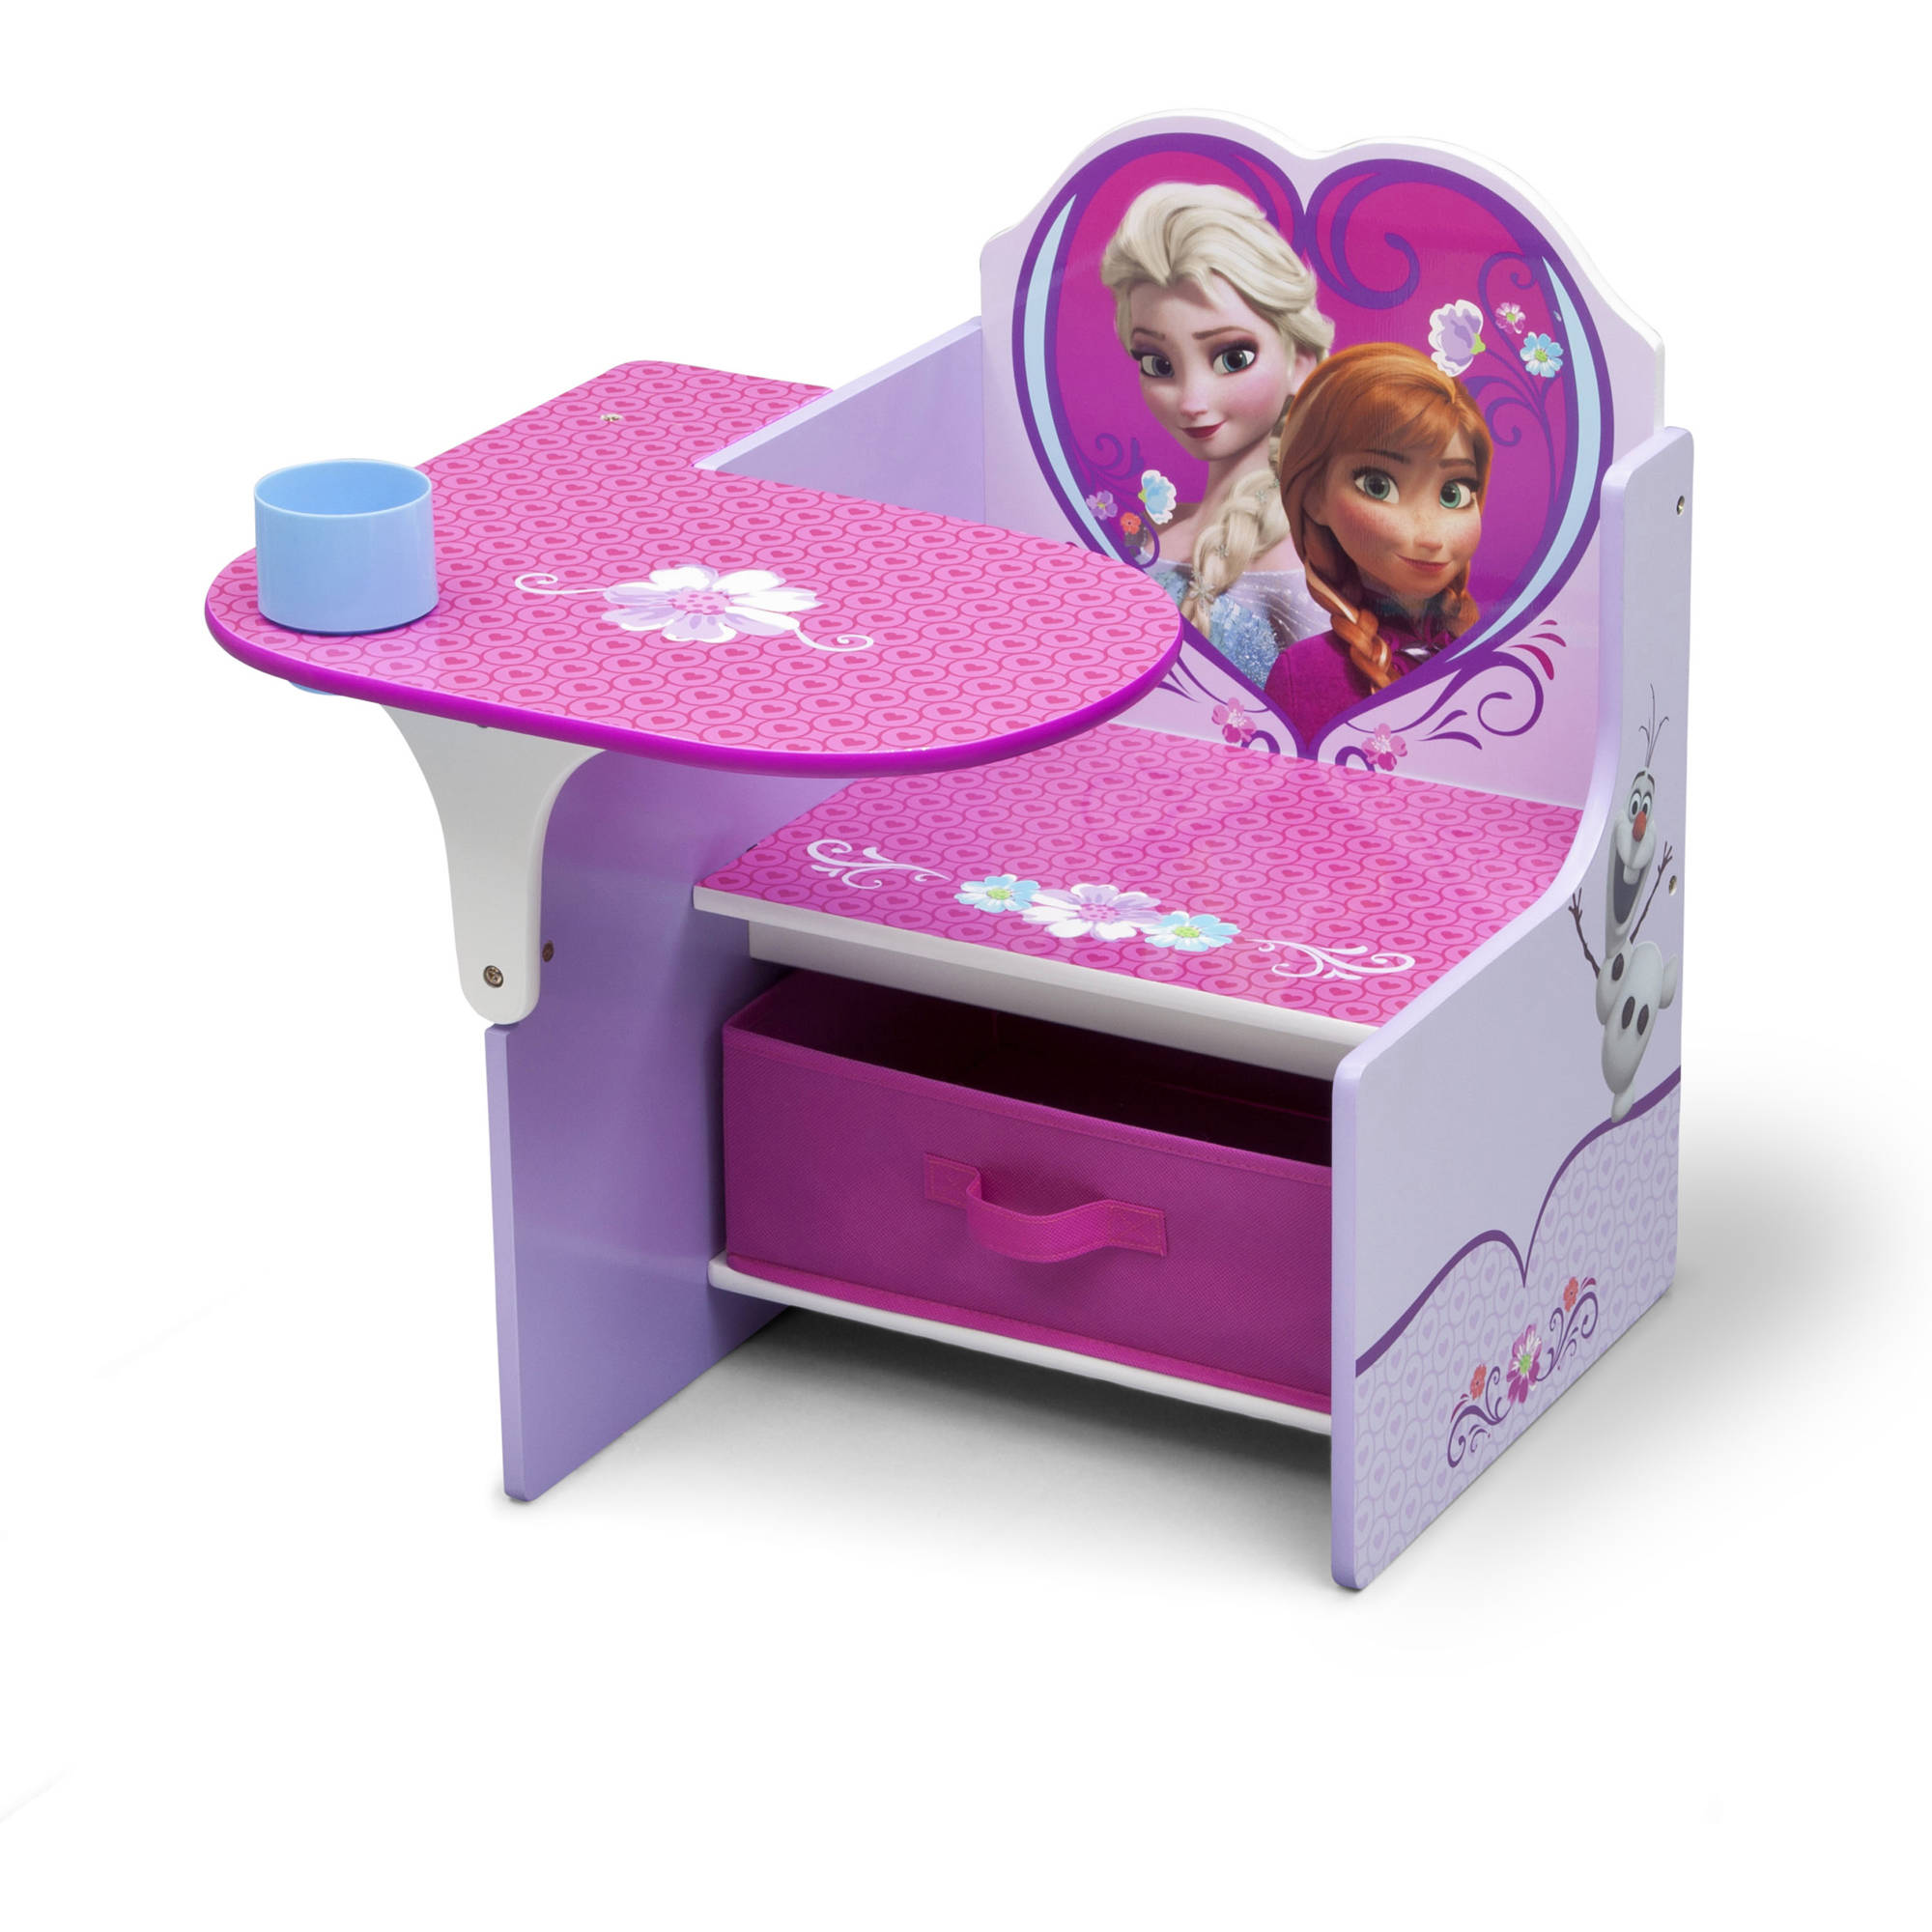 Desk Chairs For Children delta children frozen chair desk with storage bin - walmart